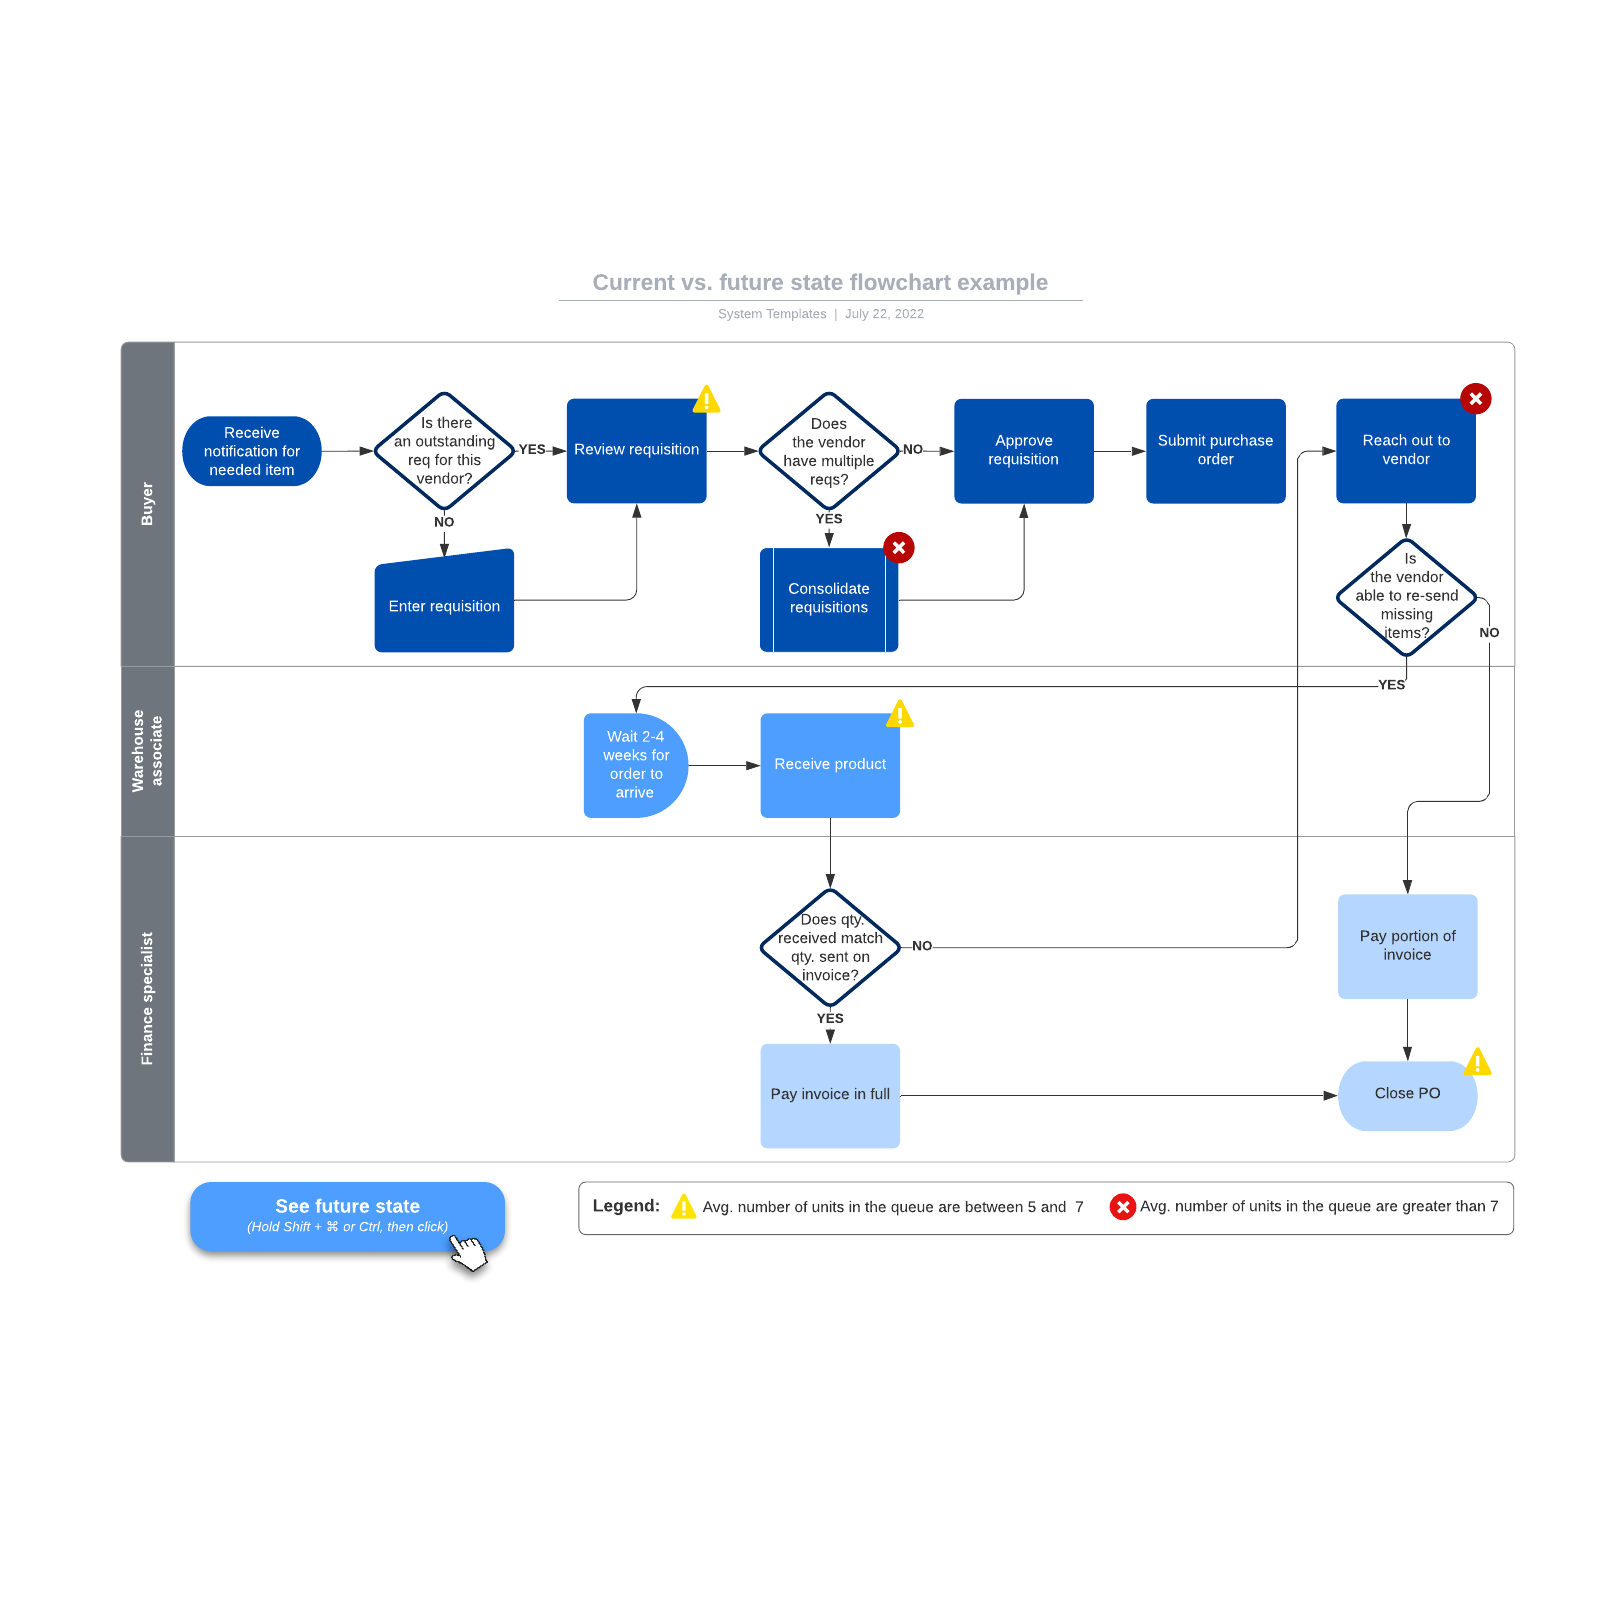 Current vs. future state flowchart example